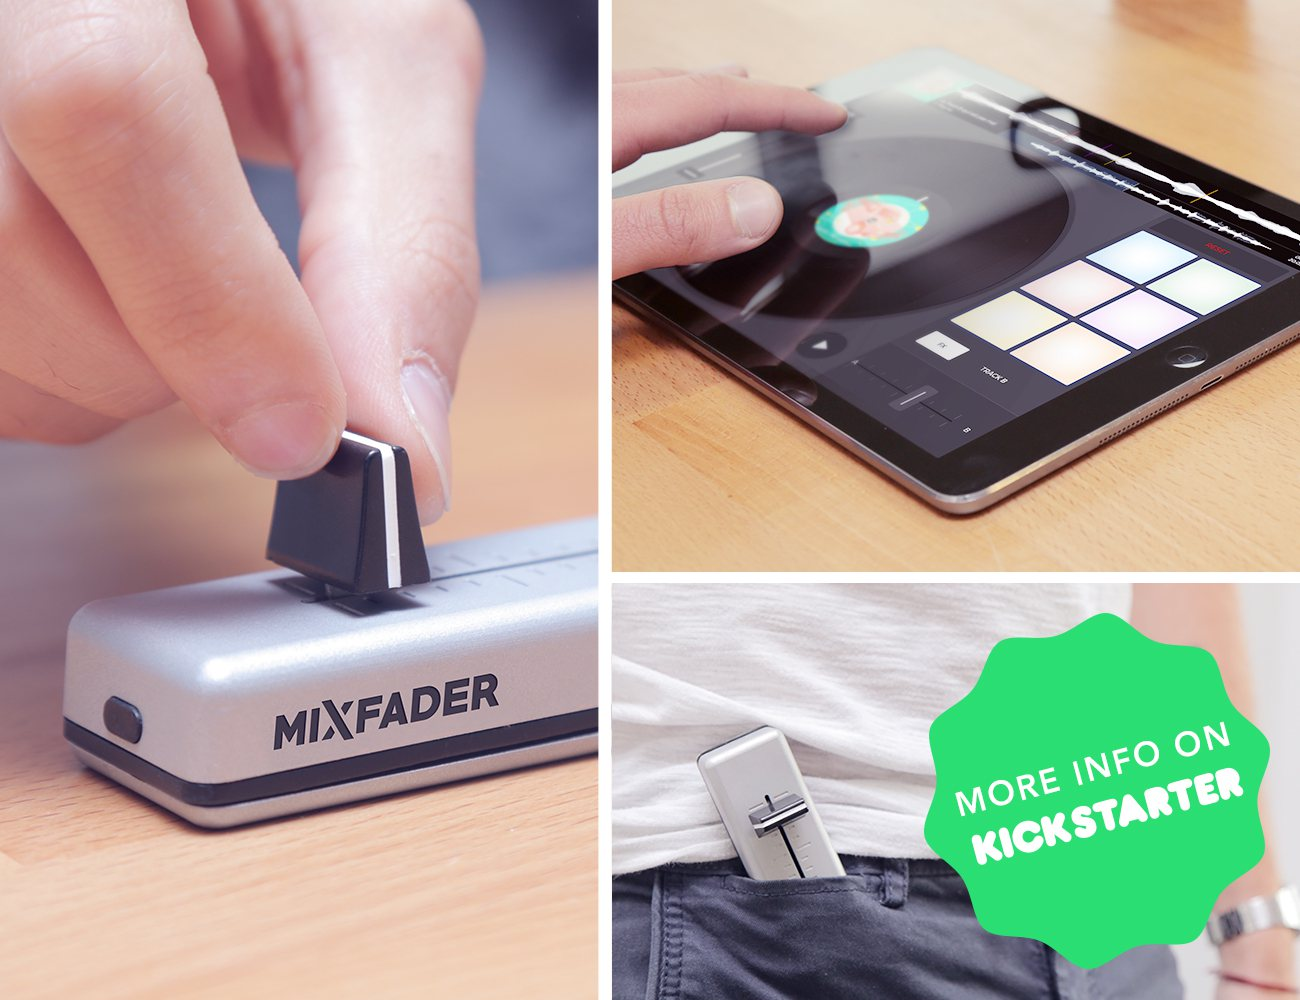 Mixfader – The World's #1 Connected Object For Becoming a DJ